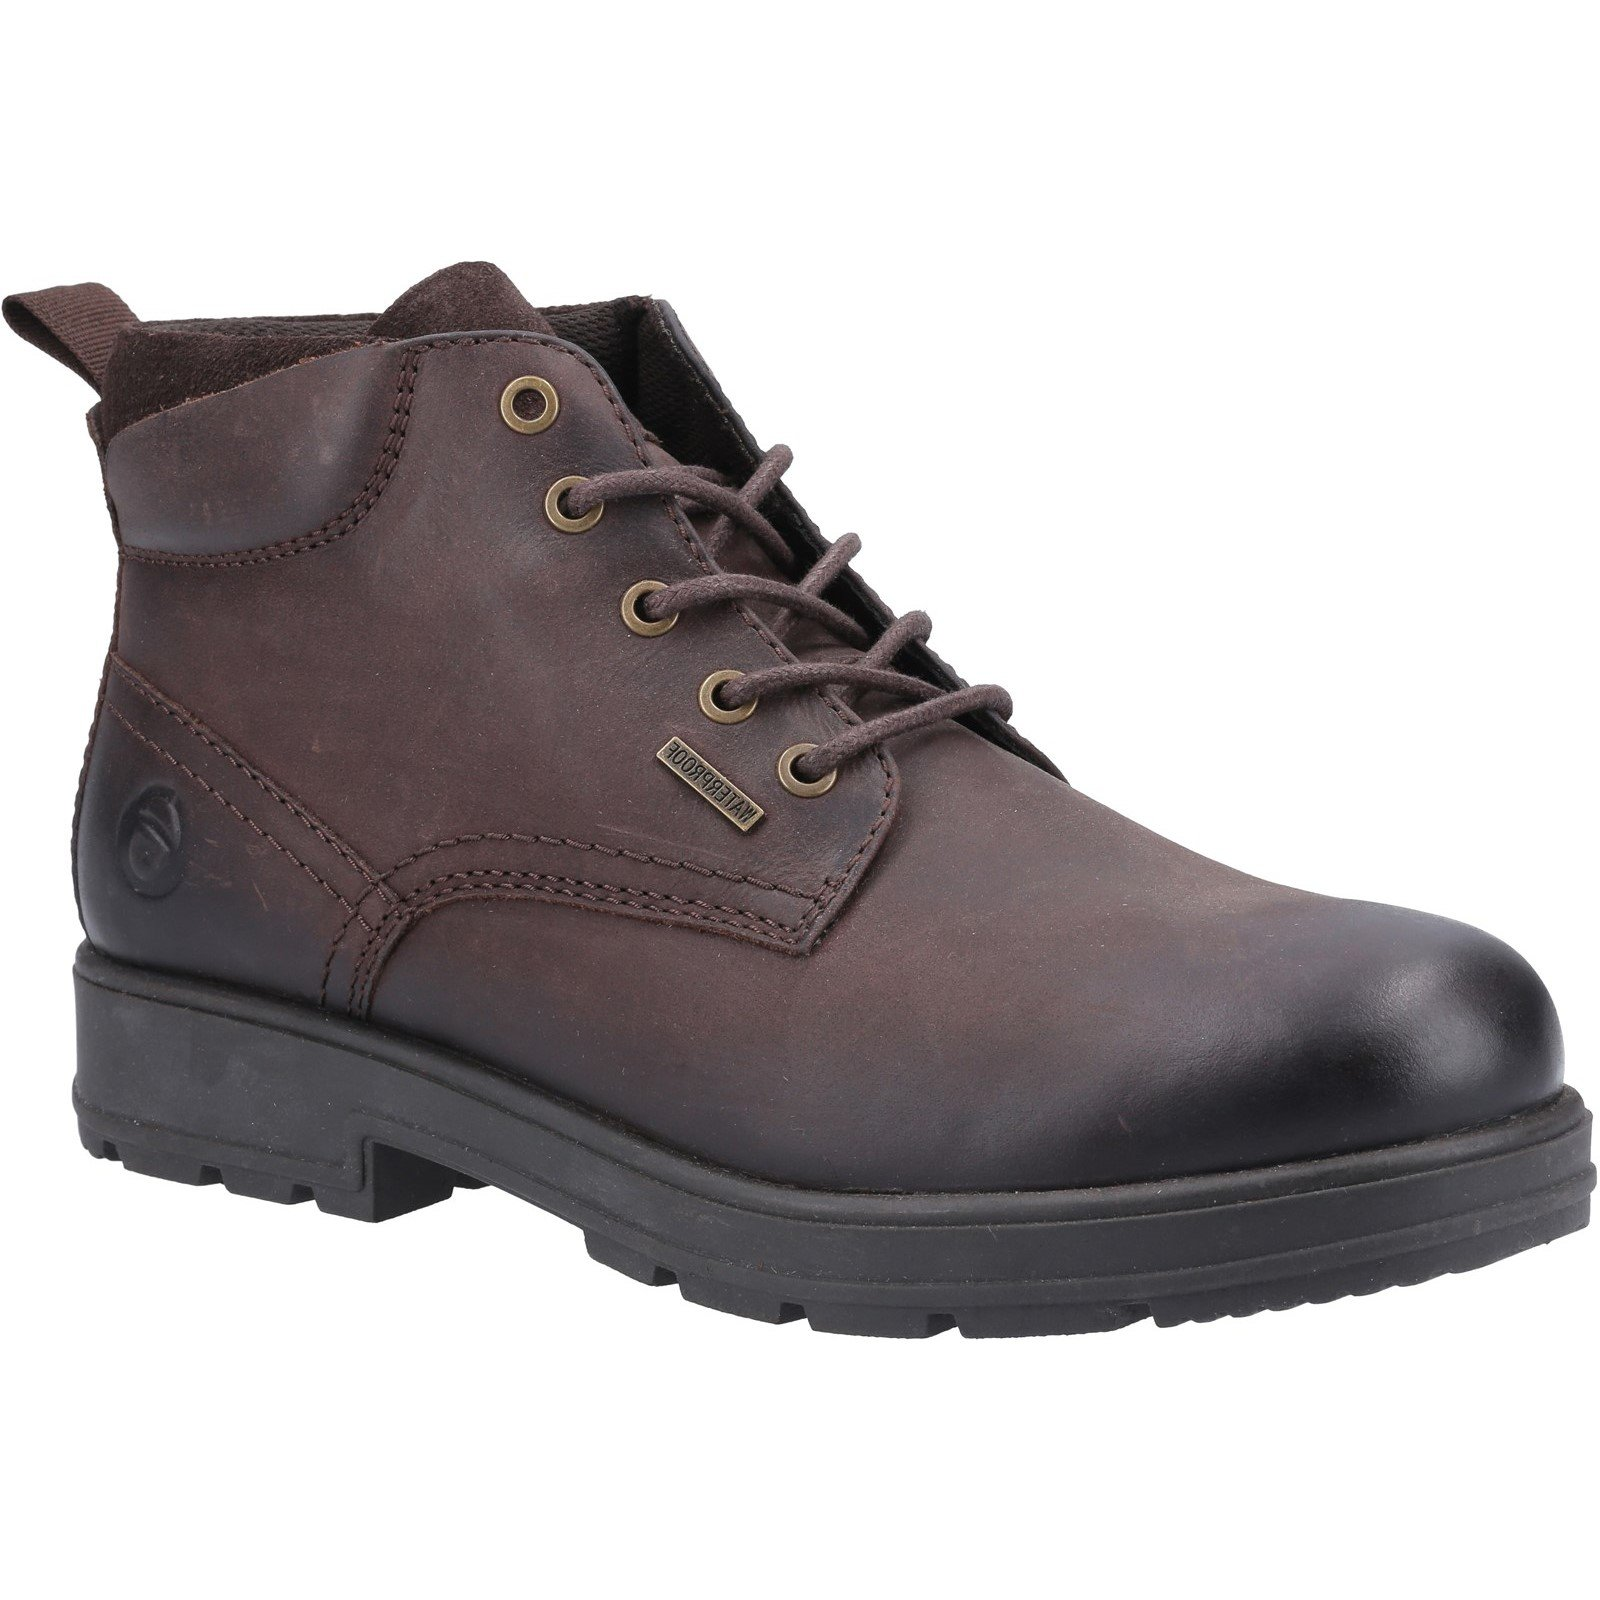 Cotswold Men's Winson Lace Up Boots Brown 32966 - Brown 11